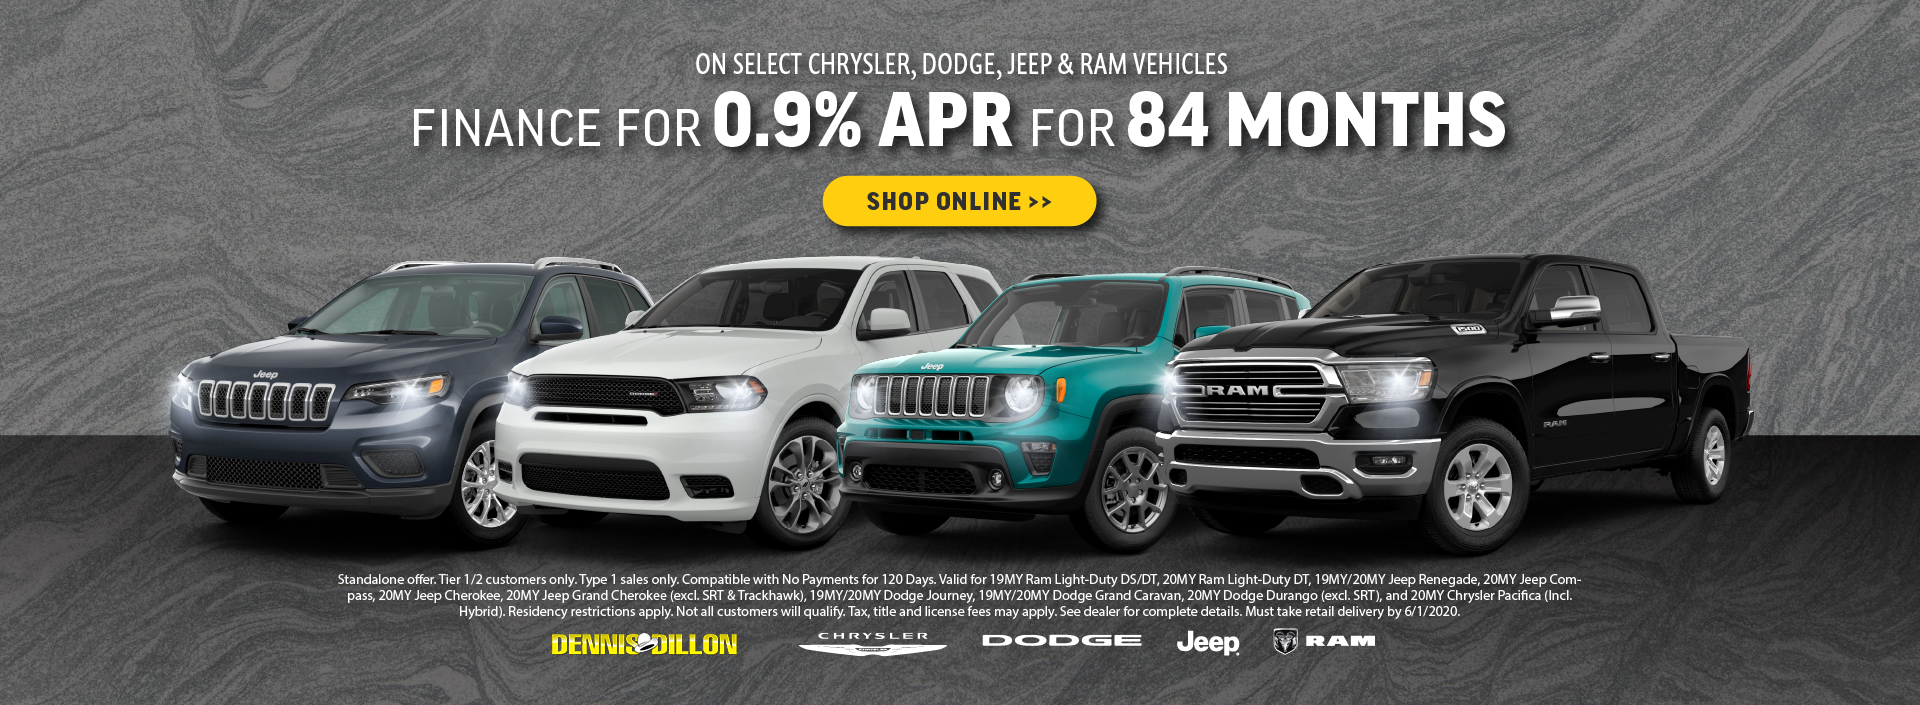 0.9% APR for 84 Months